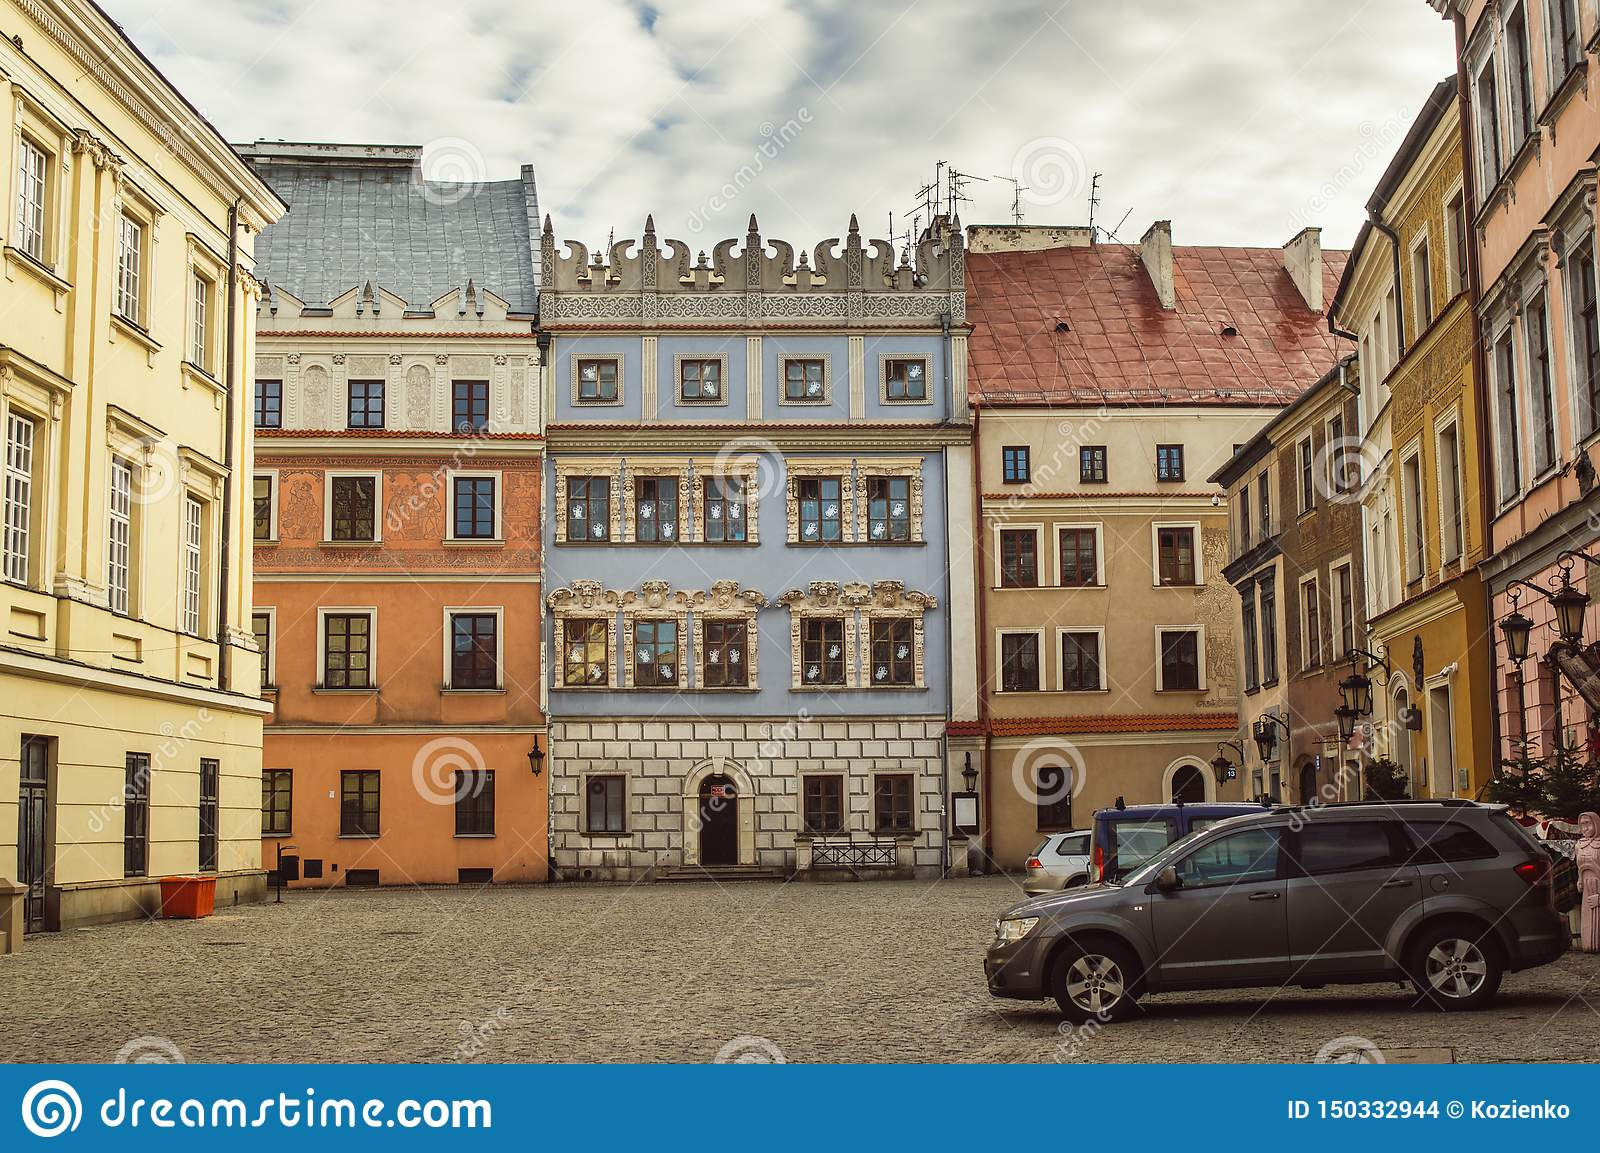 Buildings in the old center of Lublin, Poland